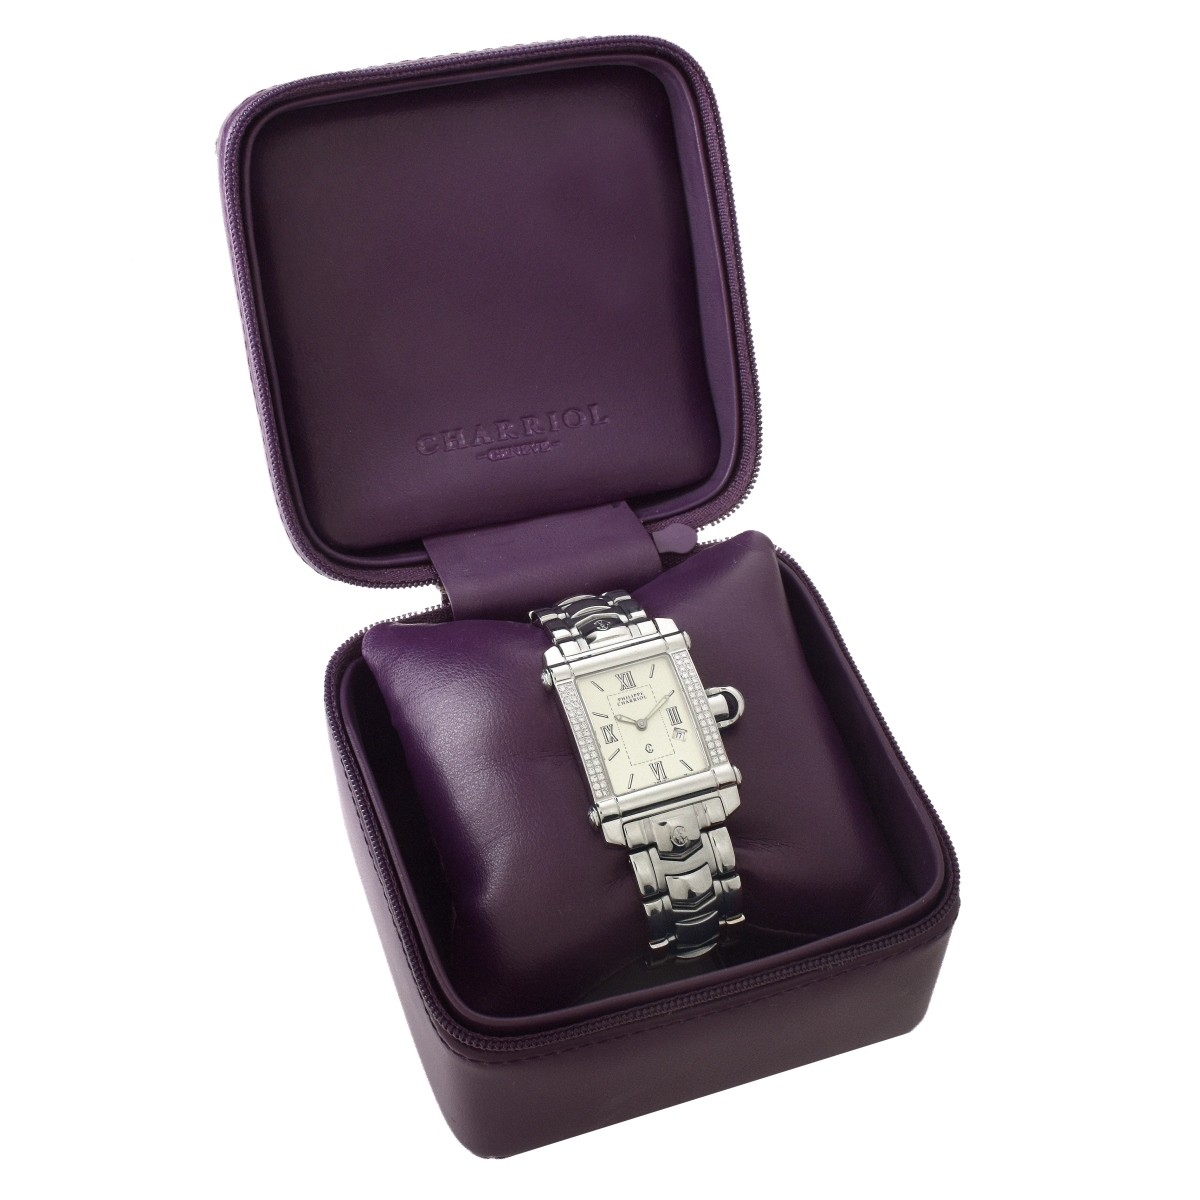 Charriol Diamond and Stainless Steel watch